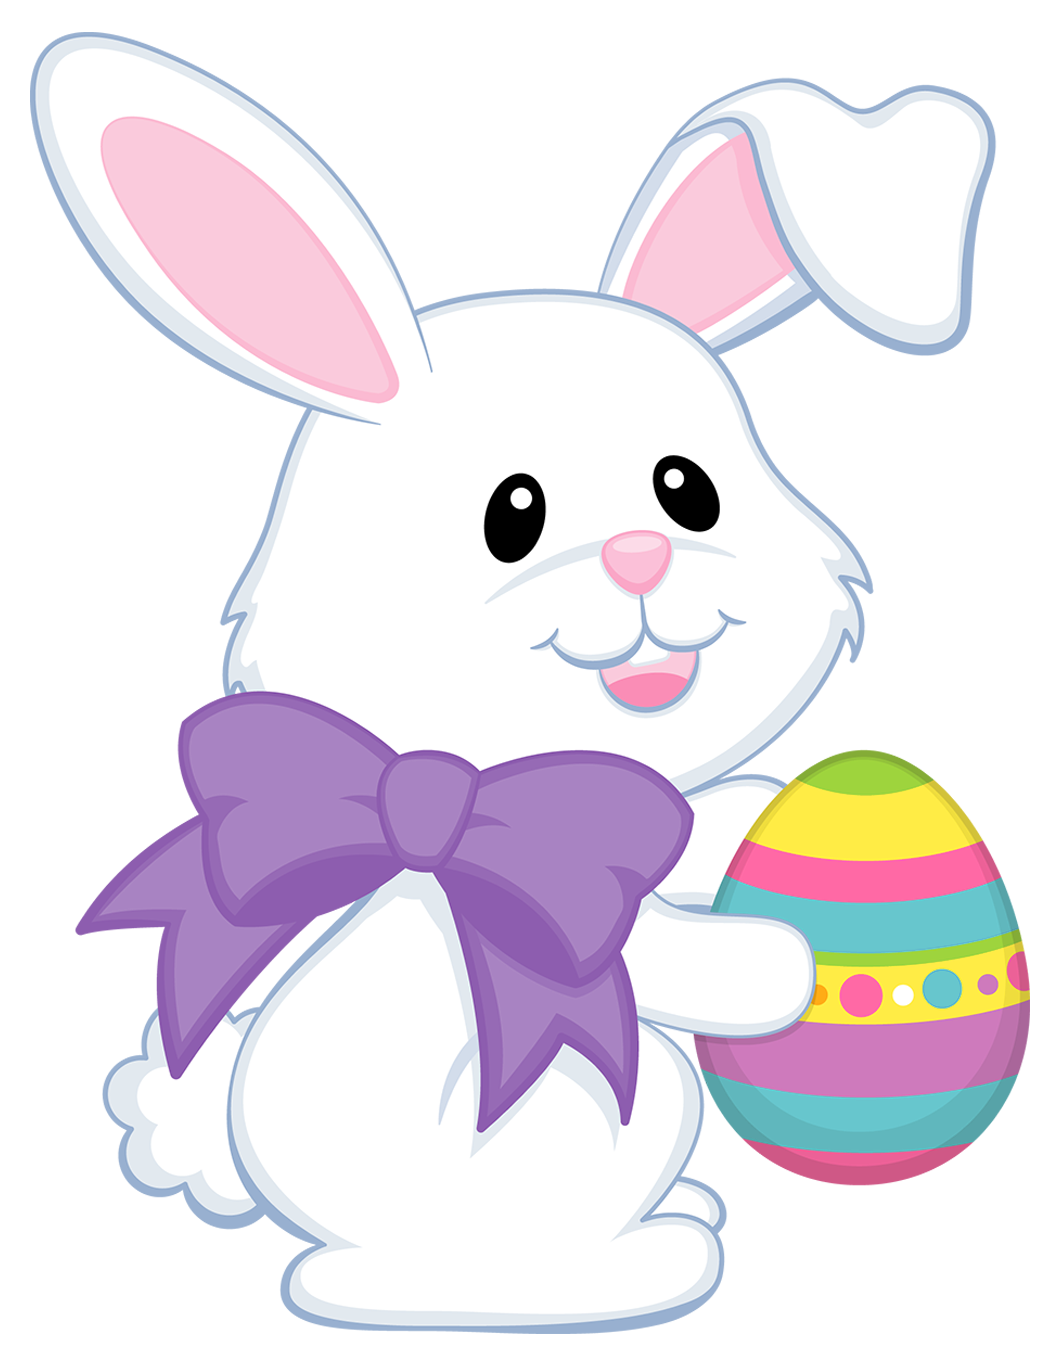 Face clipart easter bunny. Cute with purple bow